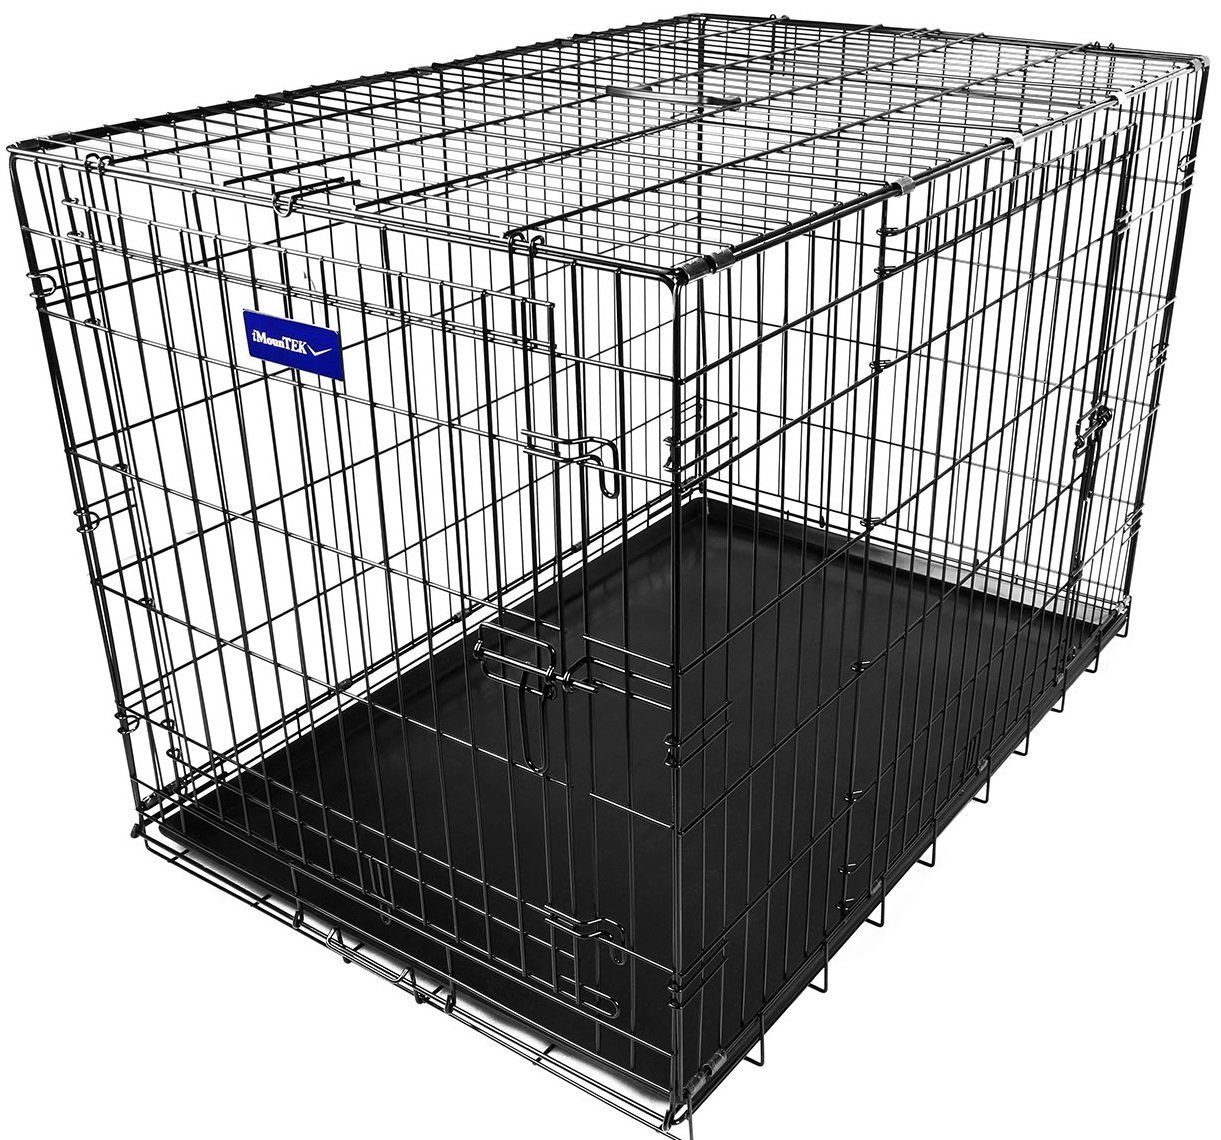 Rust Resistant Removable /& Washable Pan Tray Quick Assembly iMounTEK Folding Metal Pet Dog Puppy Cat Cage Crate Kennel W//Tray 2 Doors Wire Cage for Training